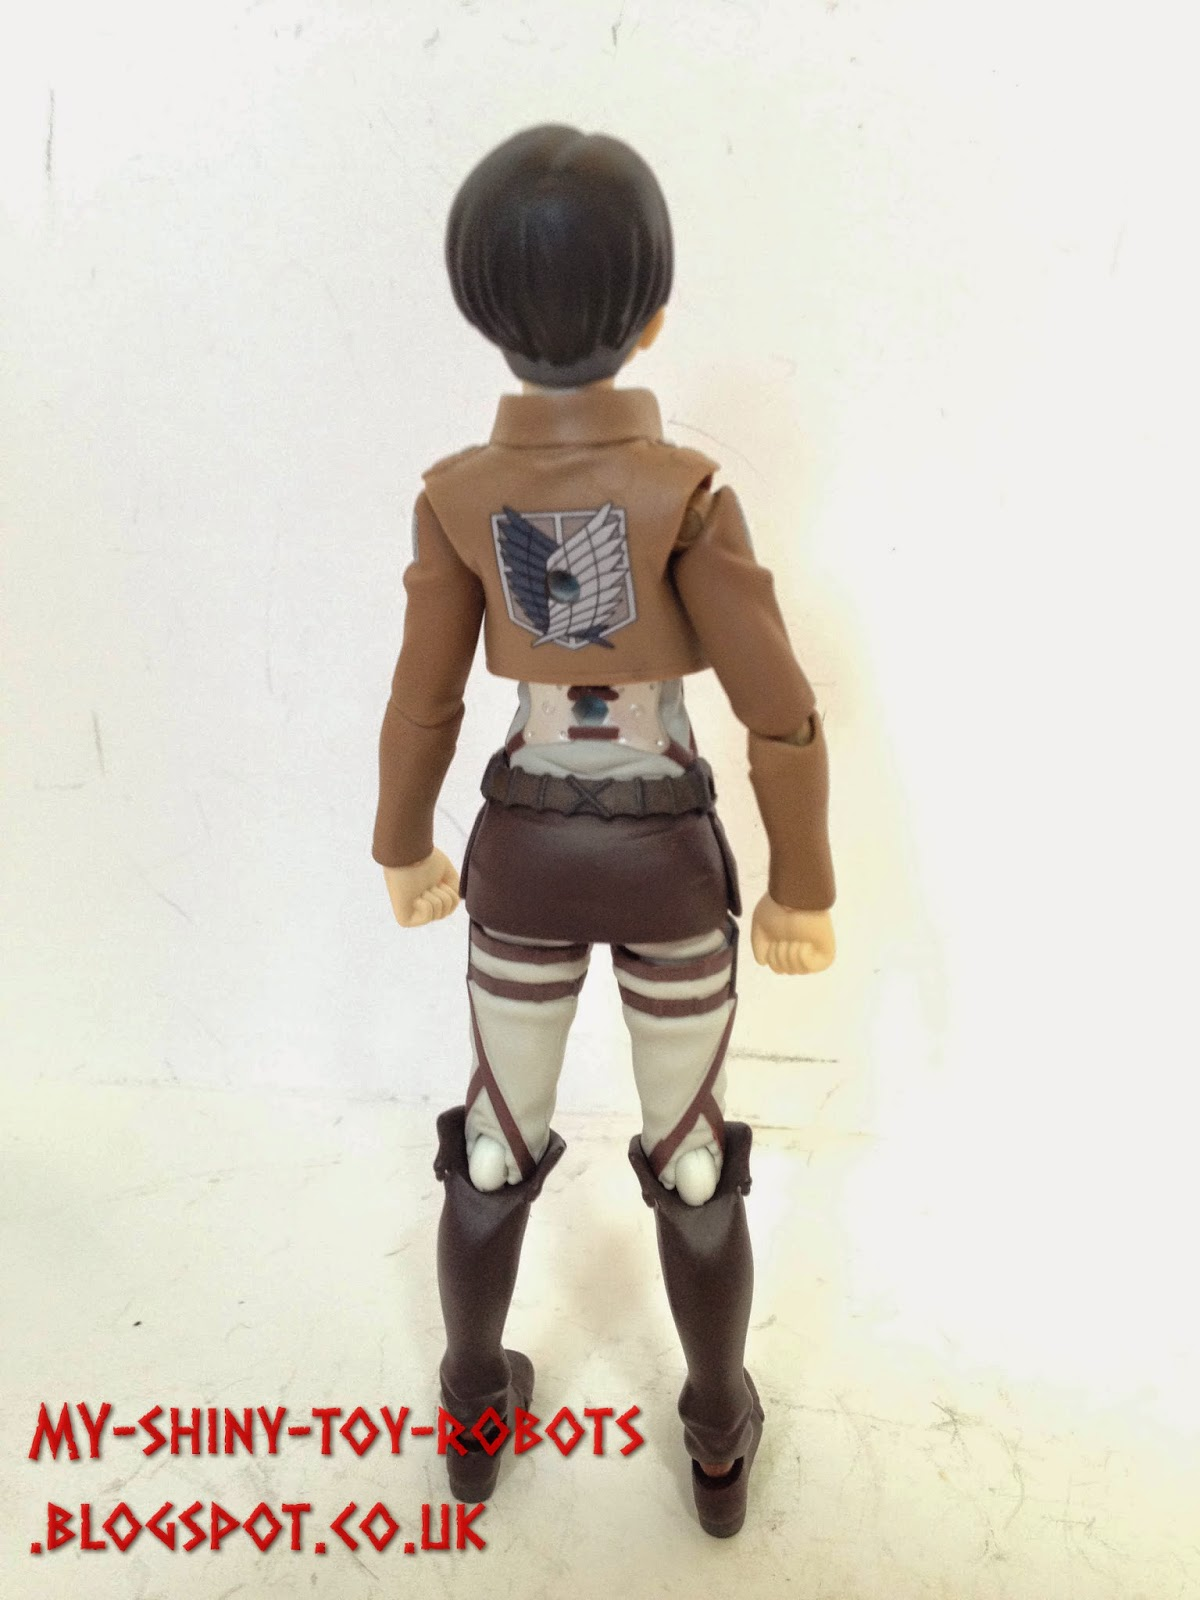 Sadly no levis for Levi